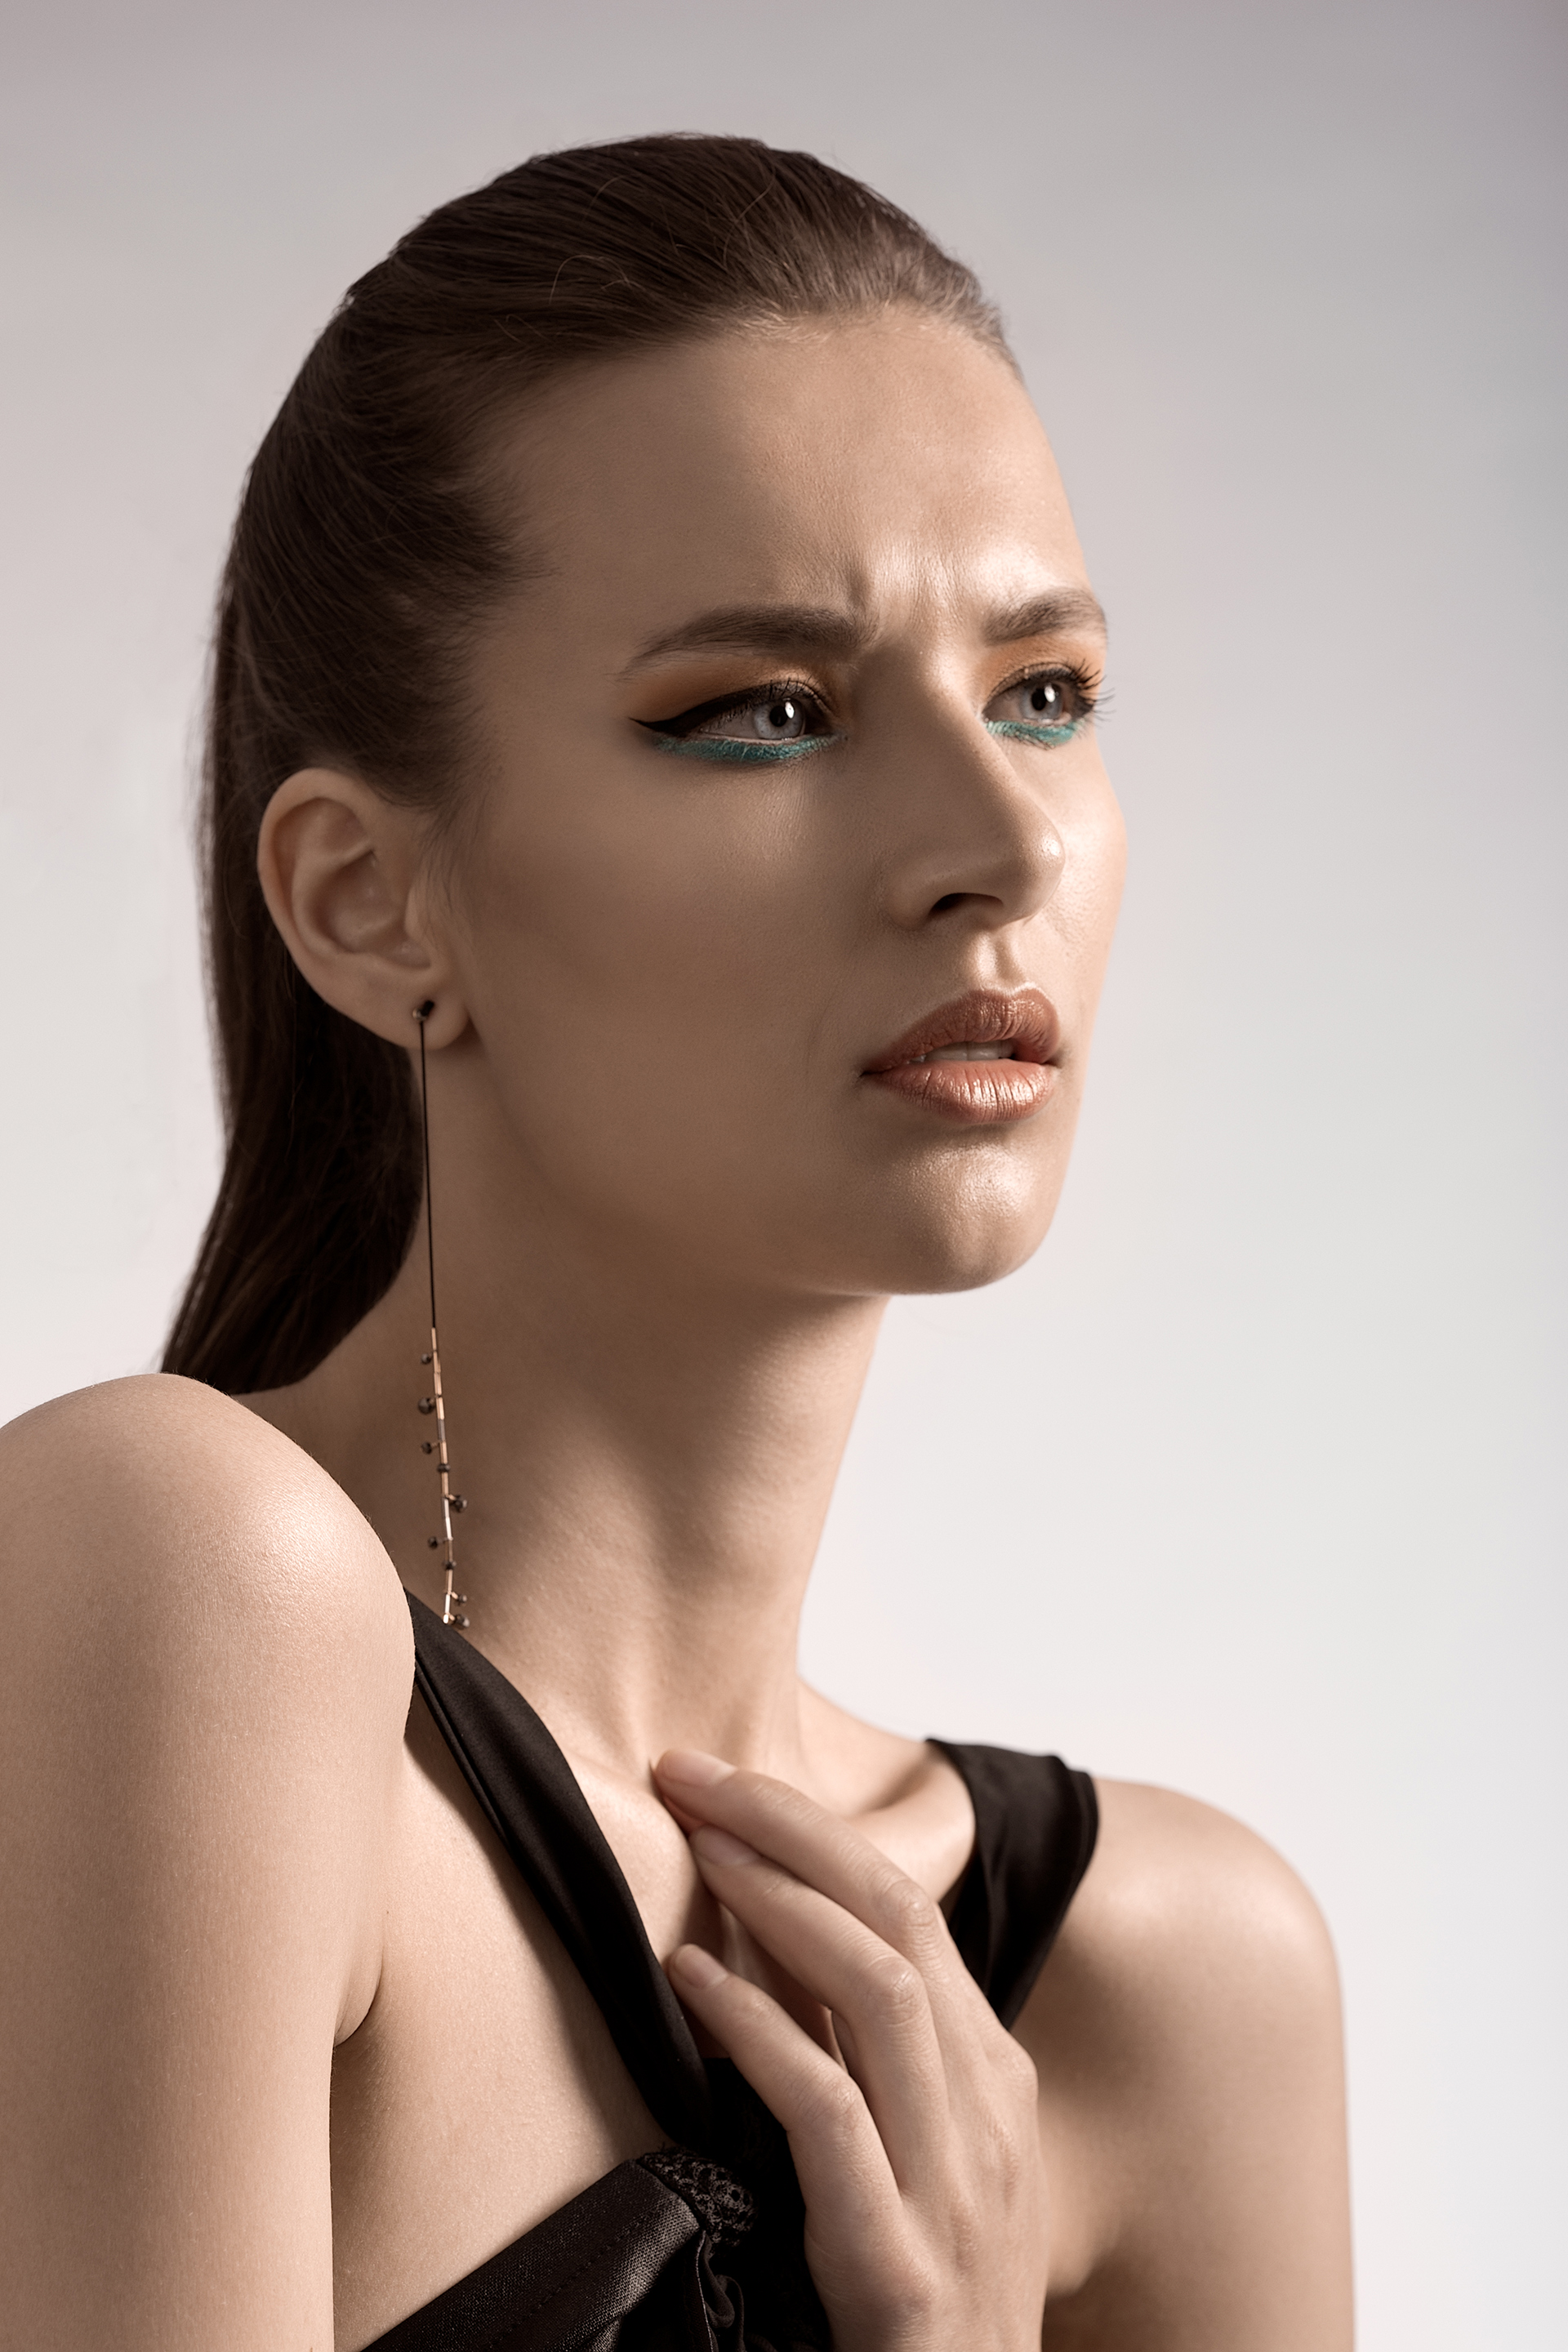 advertorial-work-for-a-fashion-designer-in-bucharest-key-visuals-for-a-marketing-campaign-4